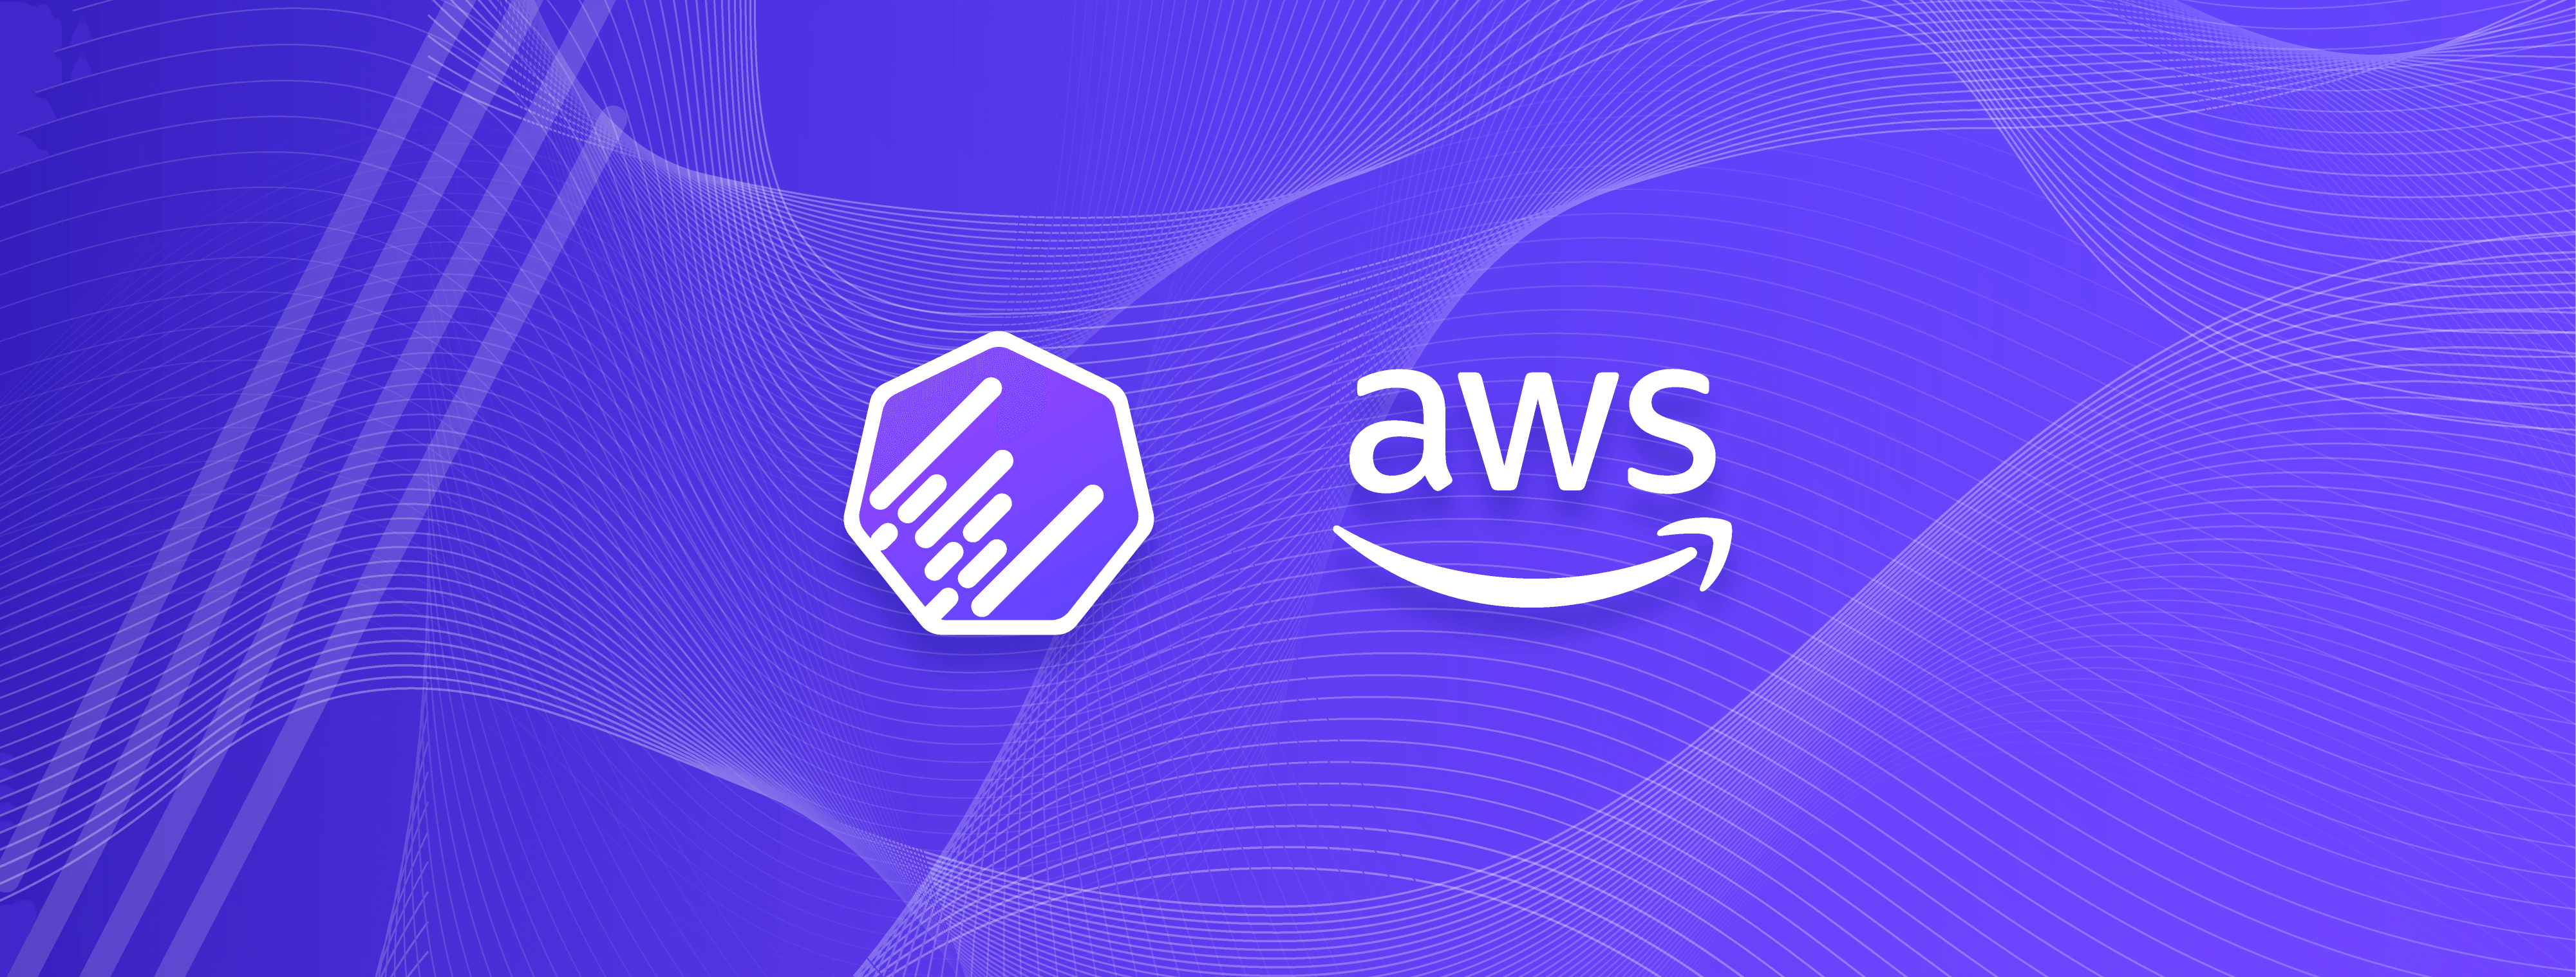 Better Utilize Infrastructure and Reduce Costs With Multiple Instance Types on AWS